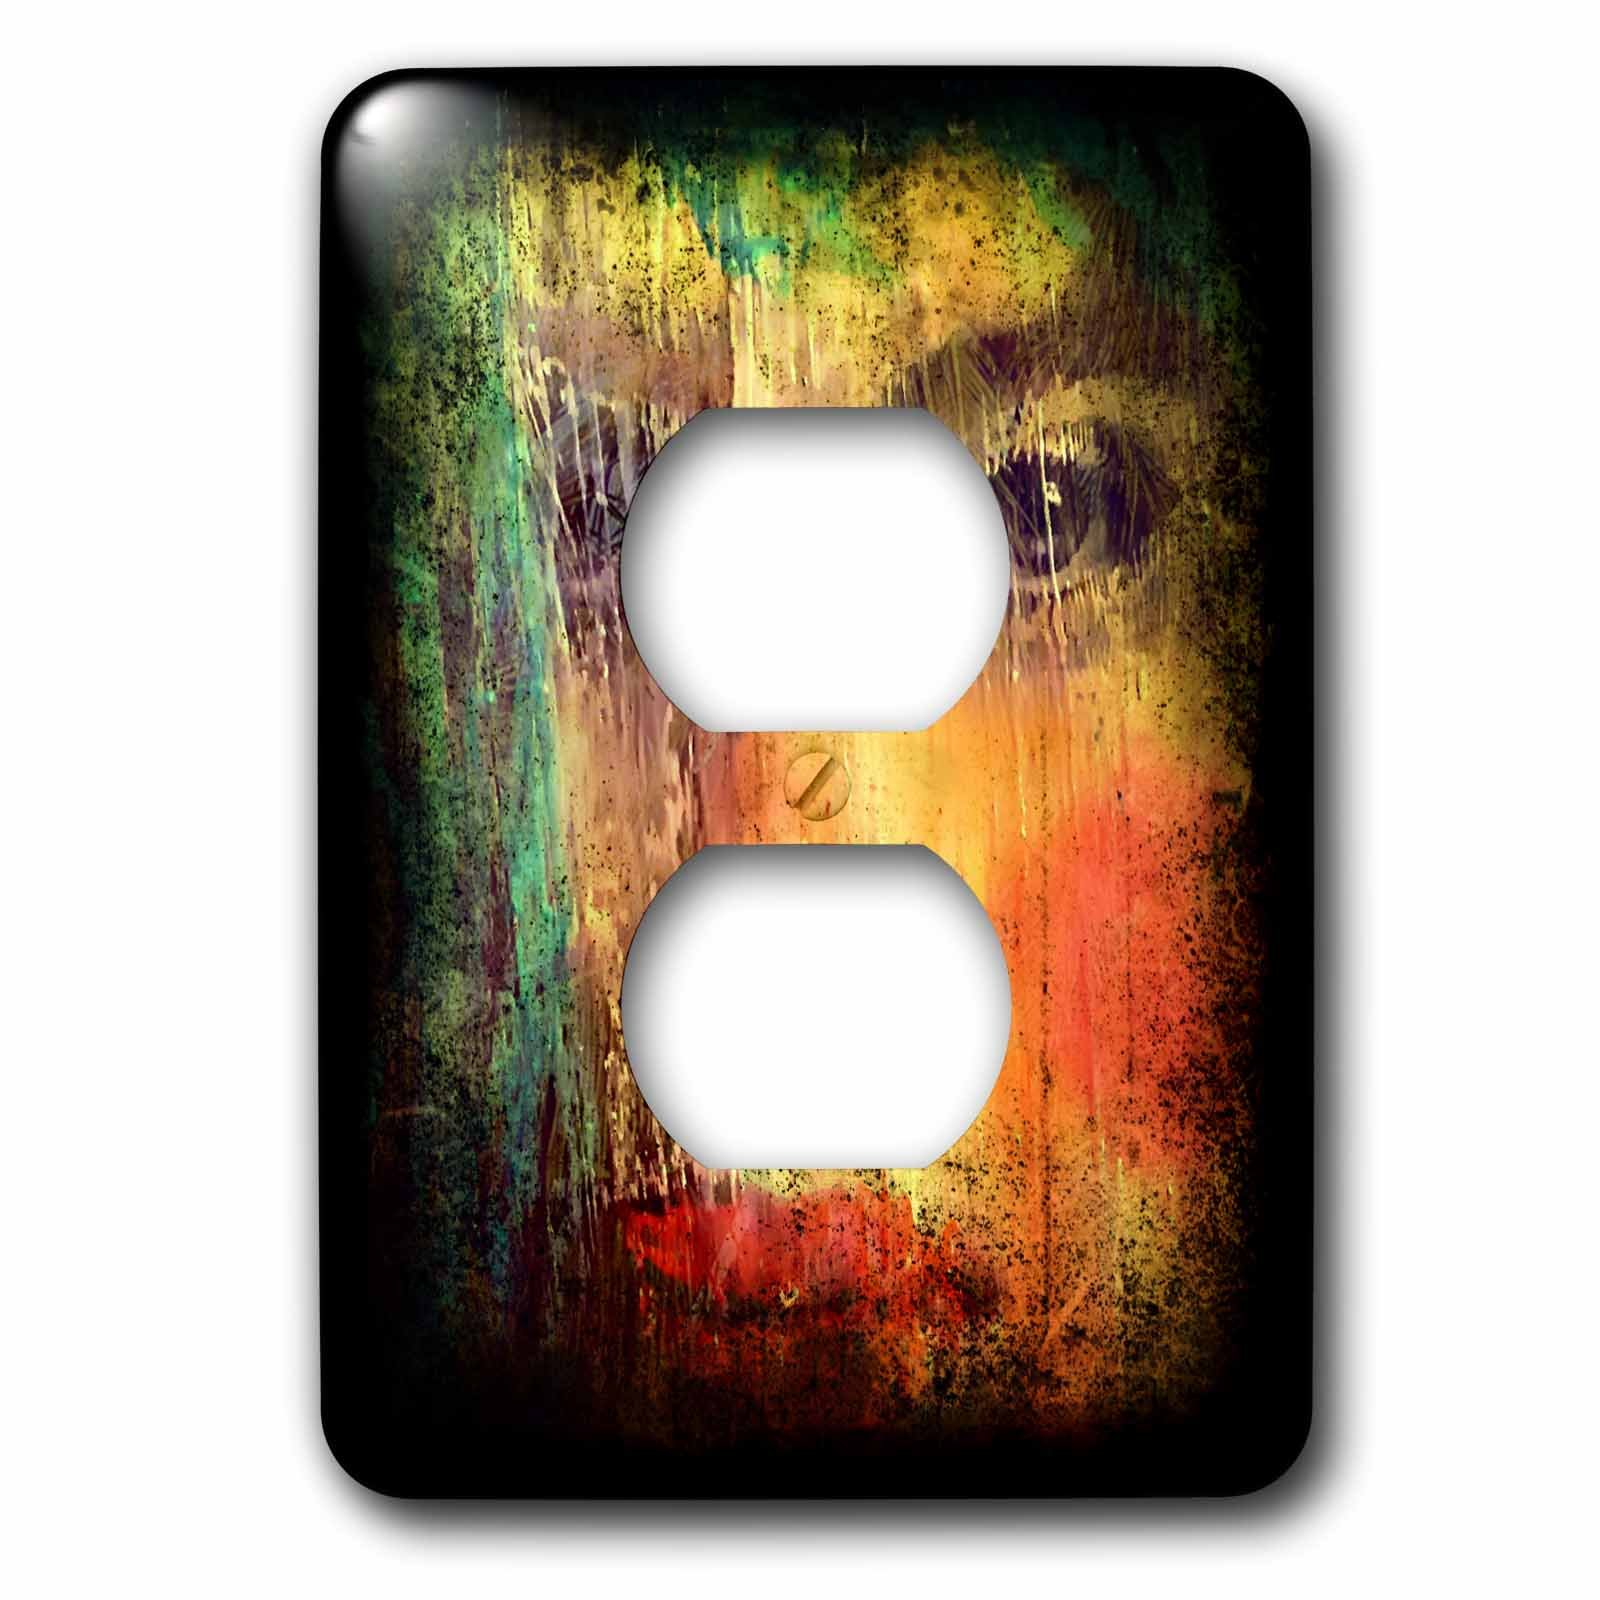 3dRose Cassie Peters Mixed Media - The Woman With Blue Hair - Light Switch Covers - 2 plug outlet cover (lsp_262925_6)